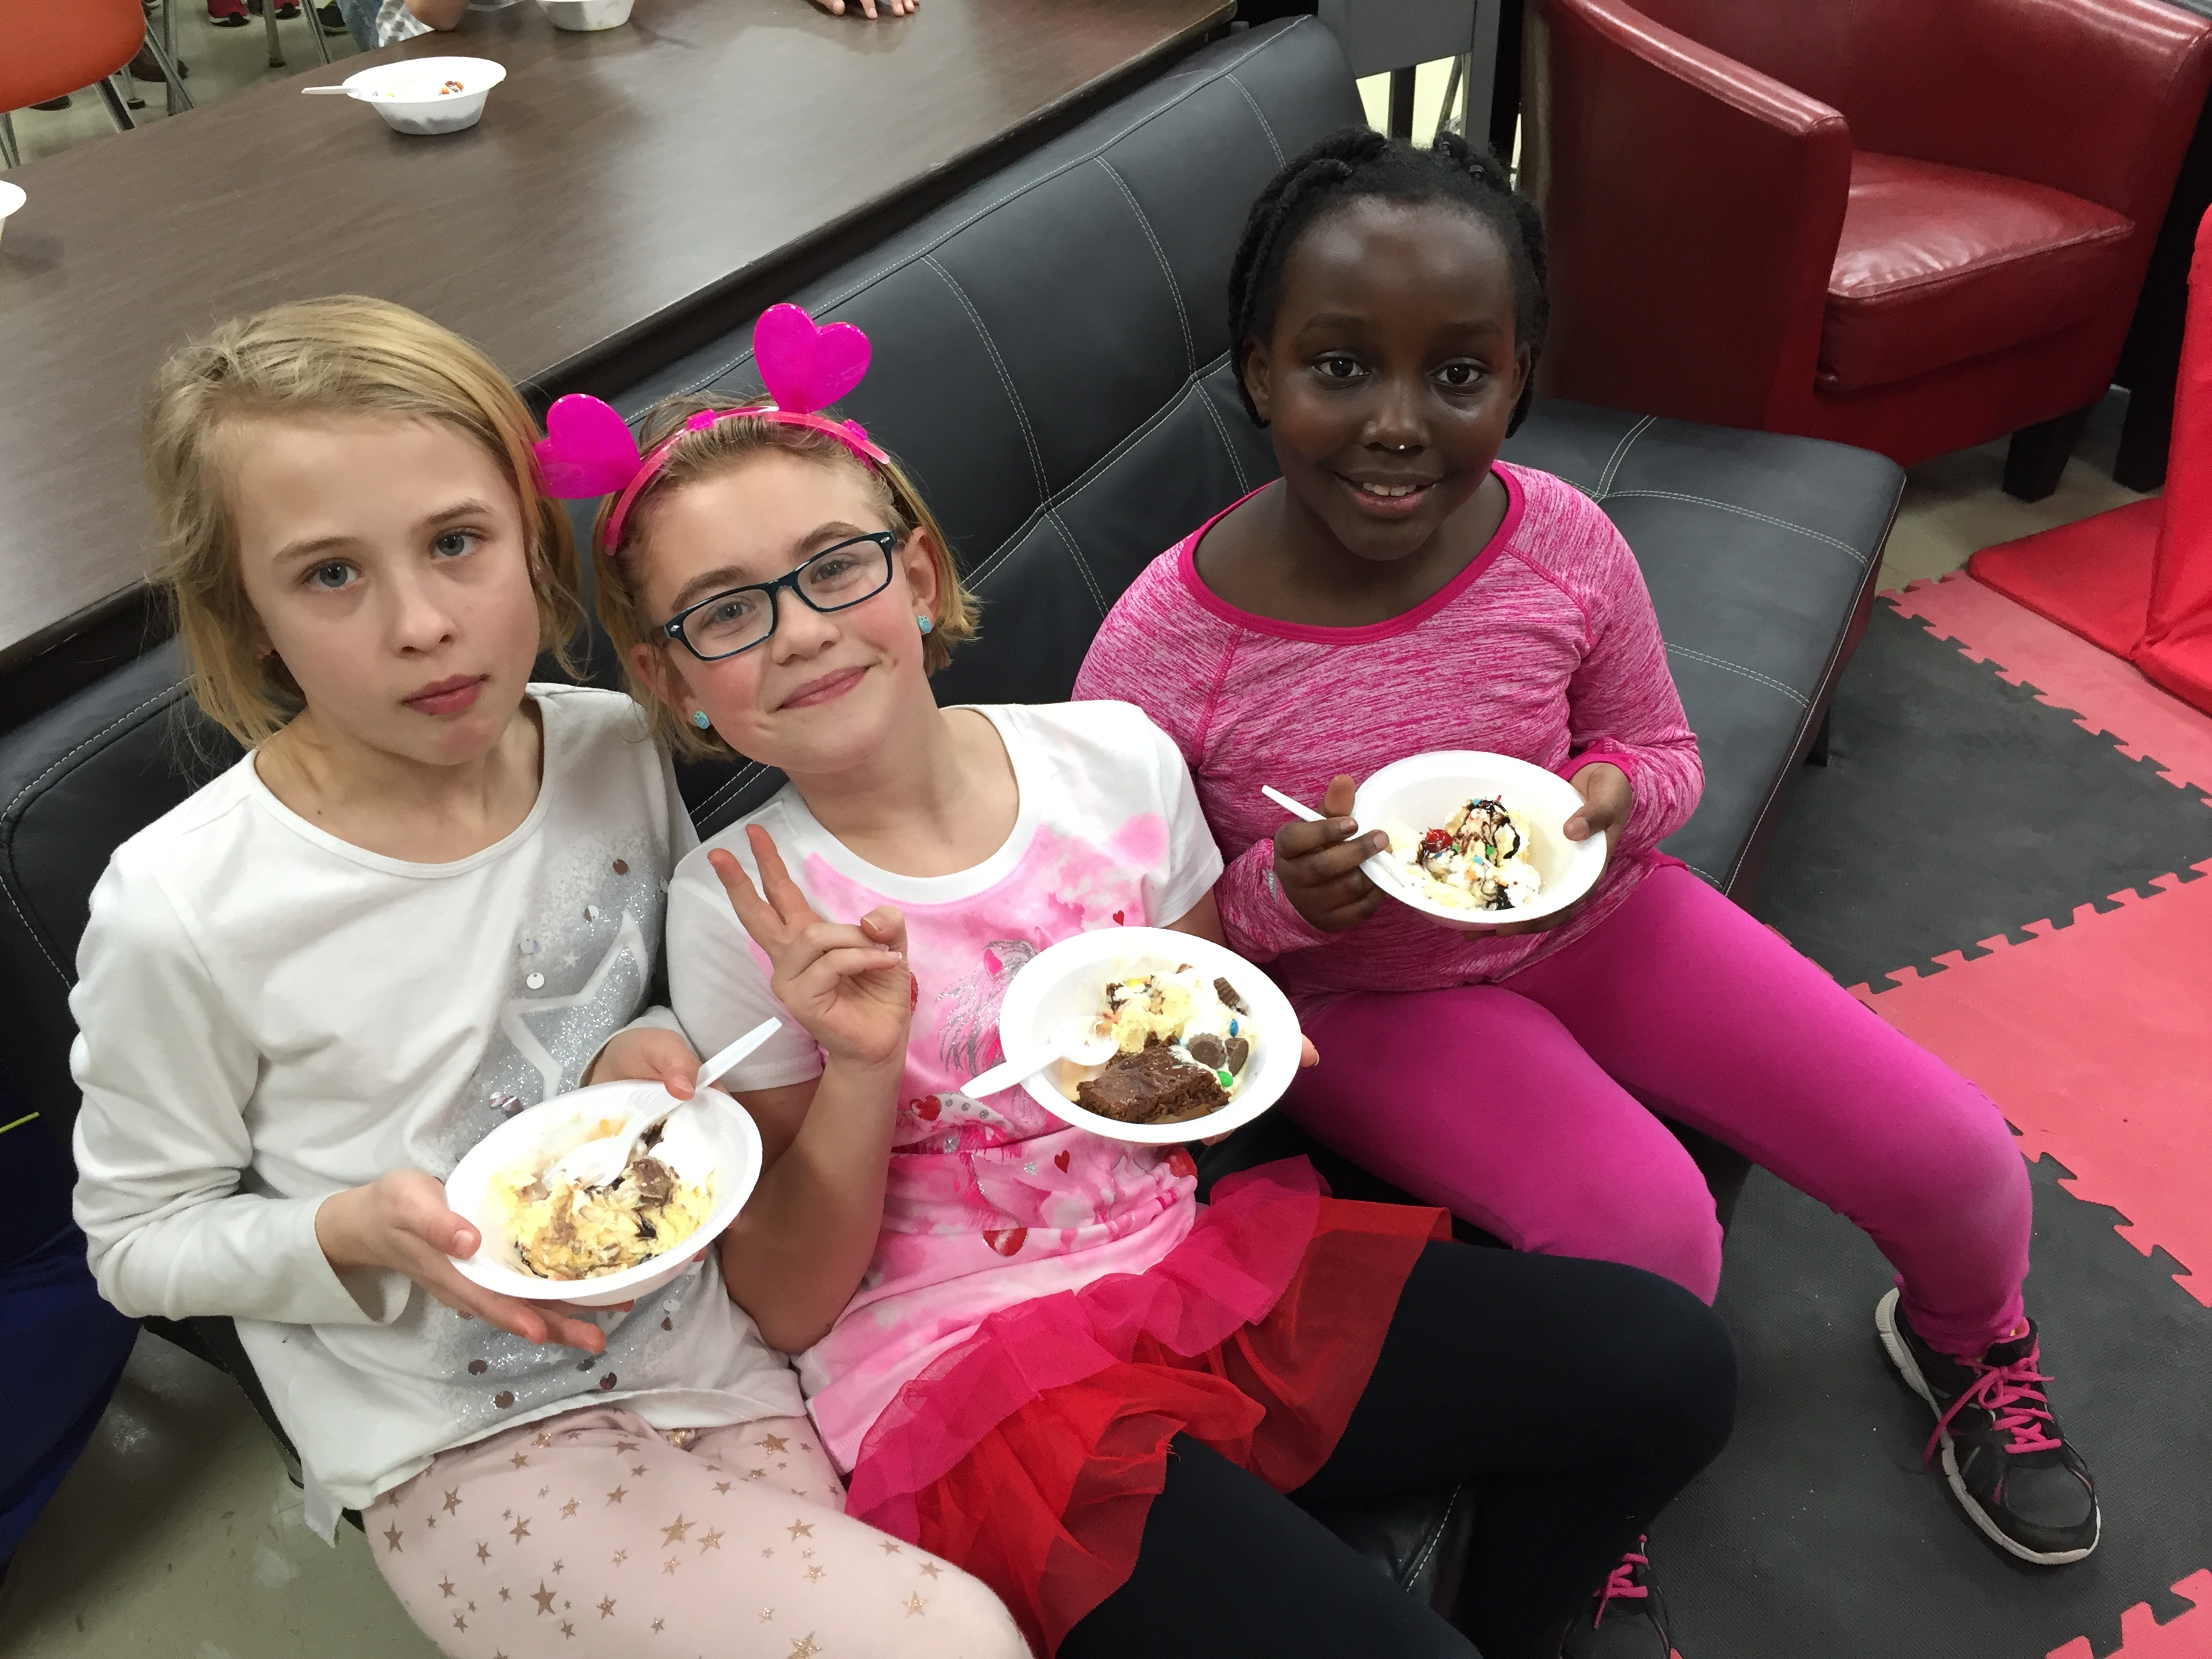 Enjoying ice cream sundaes!